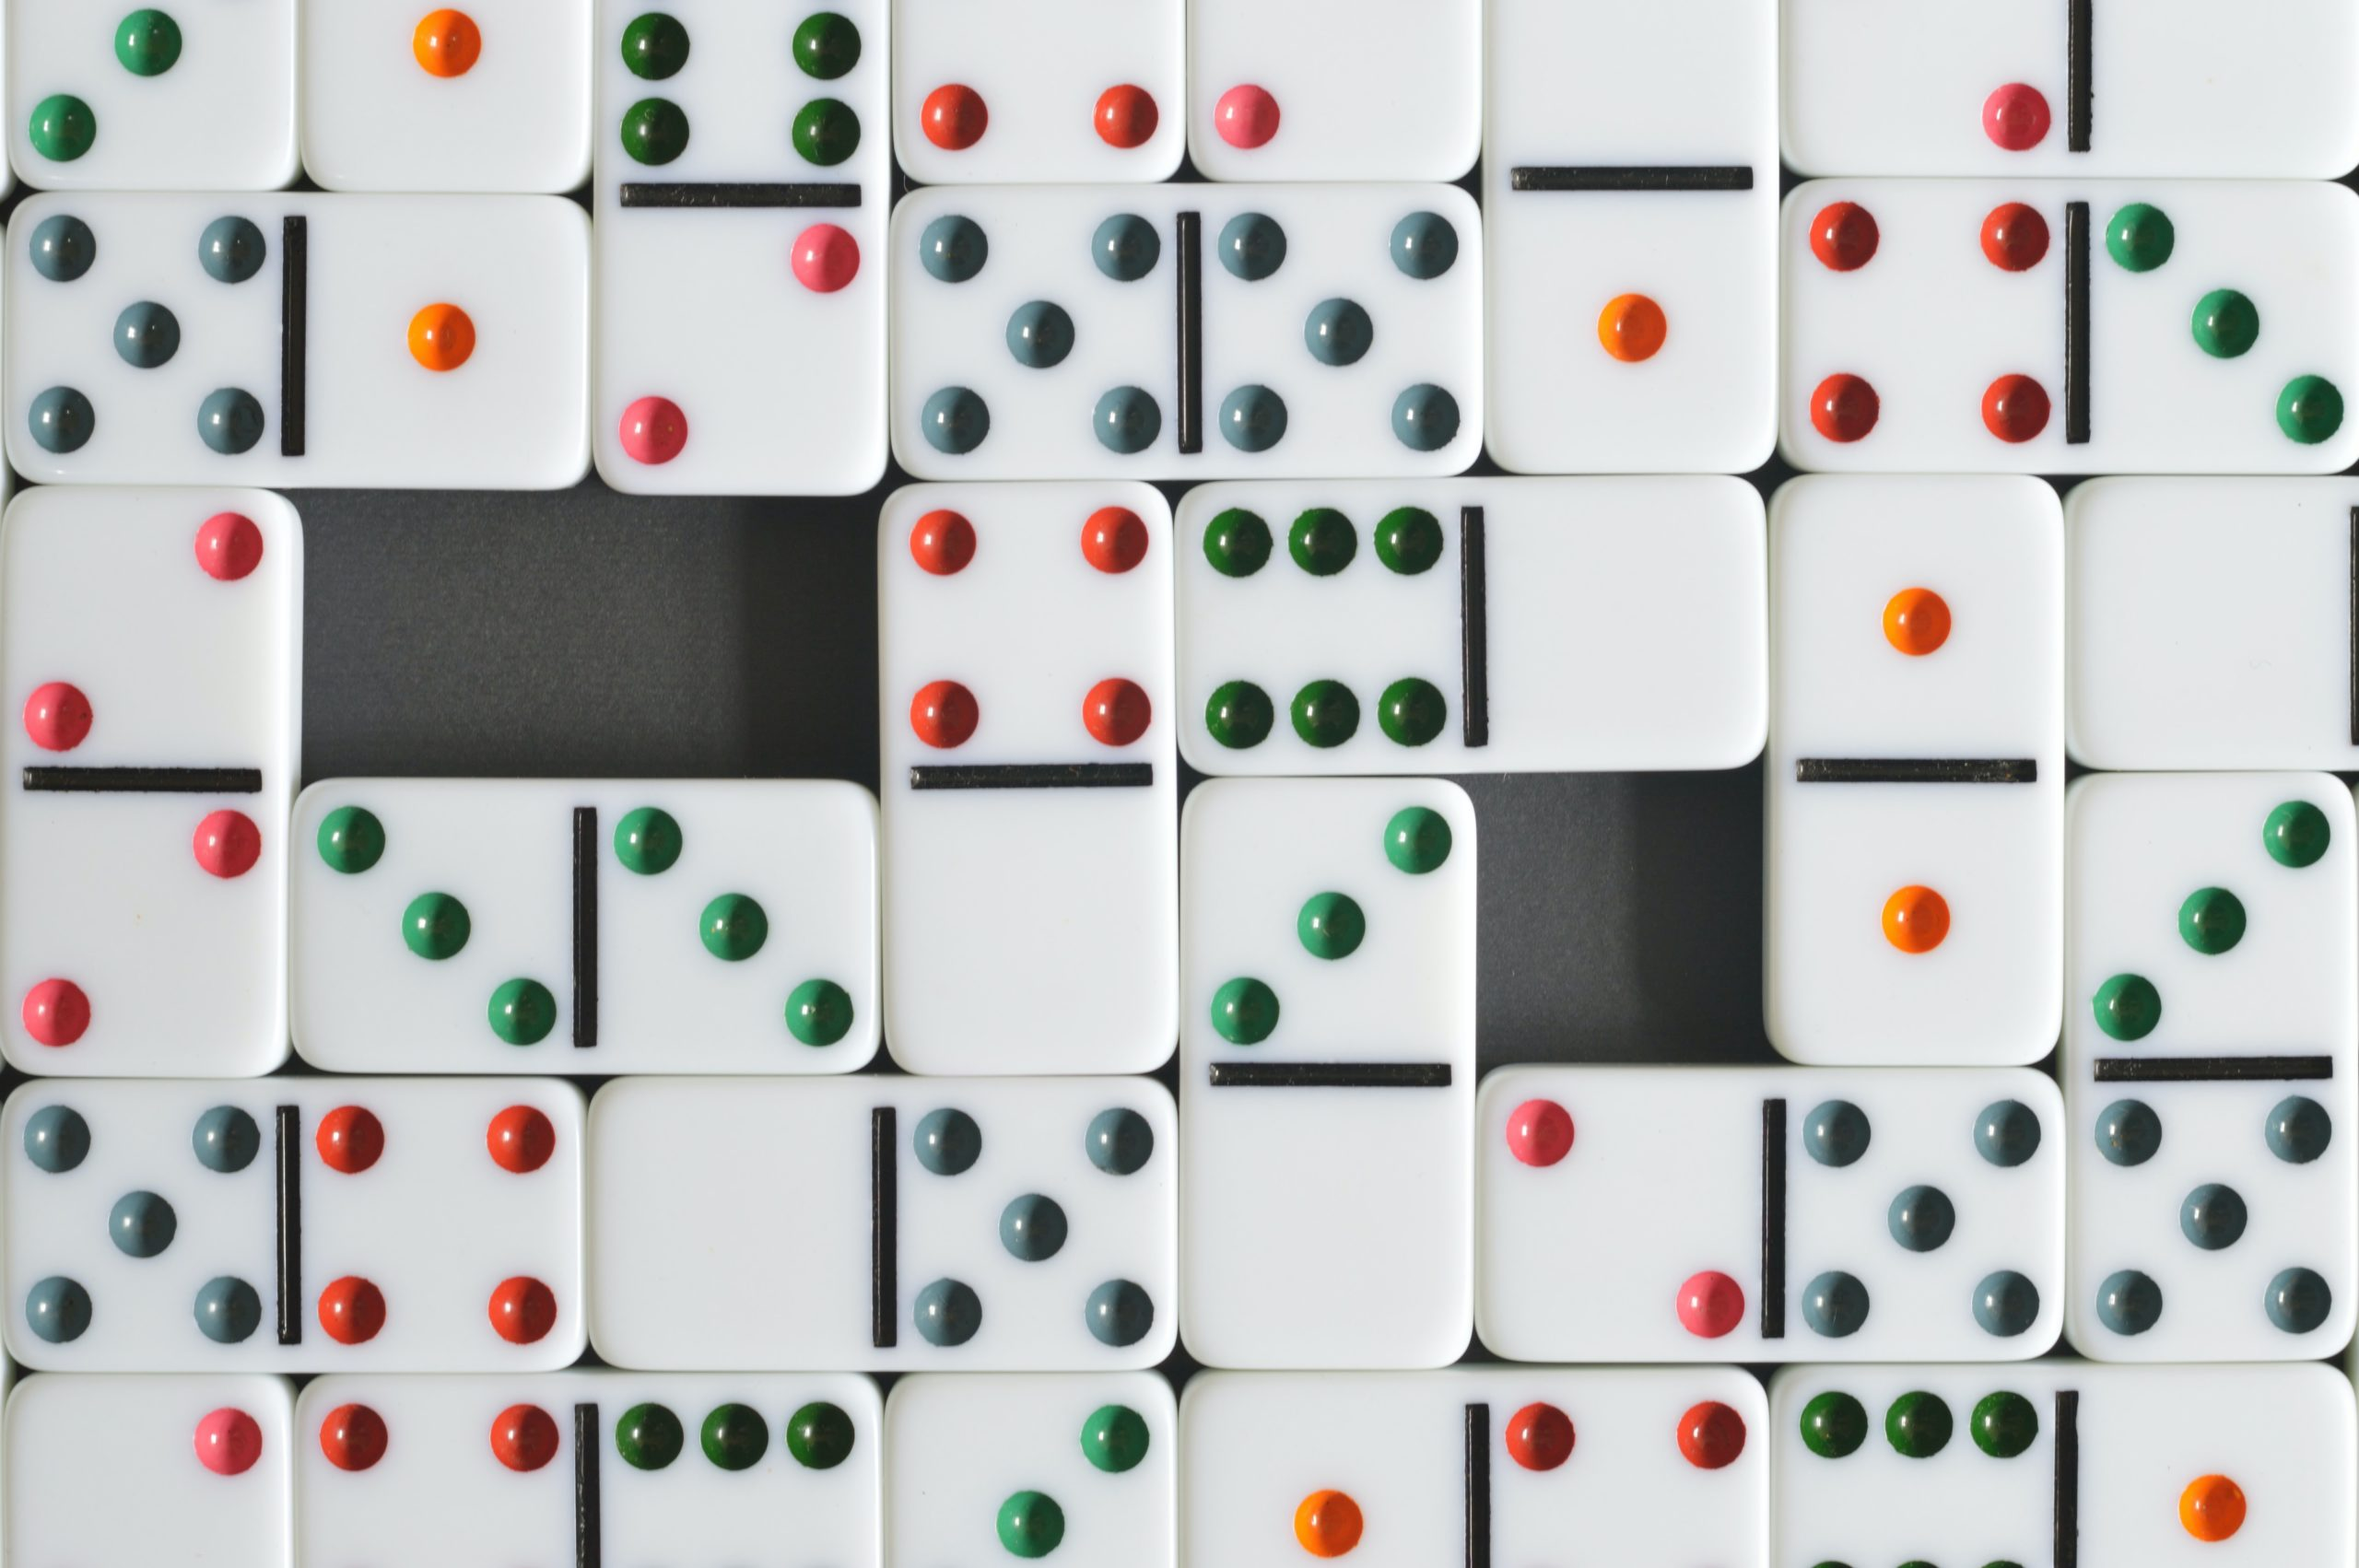 A guide on what is gamification, how gamification works, and how to gamify your app